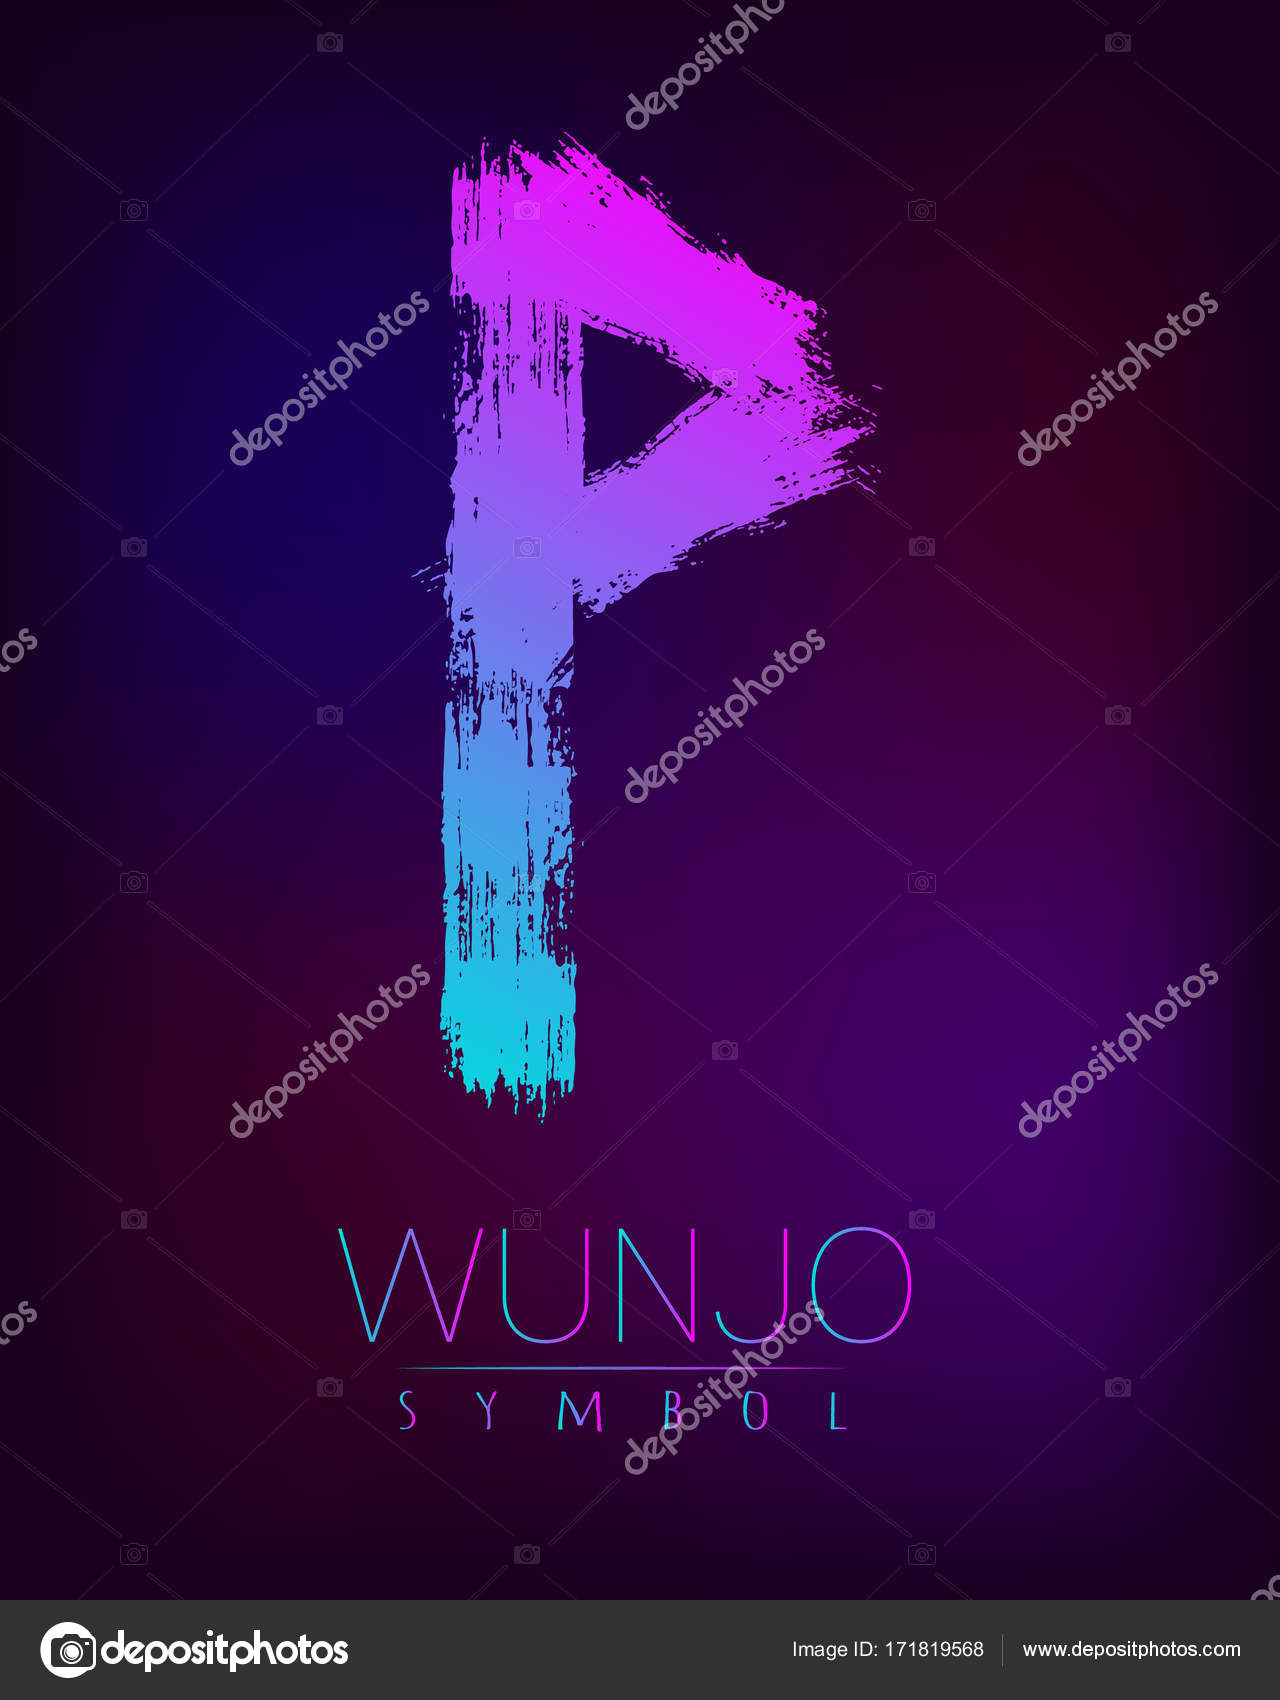 Scandinavia is a wunjo riches vector illustration symbol of futhark rune scandinavia is a wunjo riches vector illustration symbol of futhark letters brush stripes with trend gradient buycottarizona Choice Image